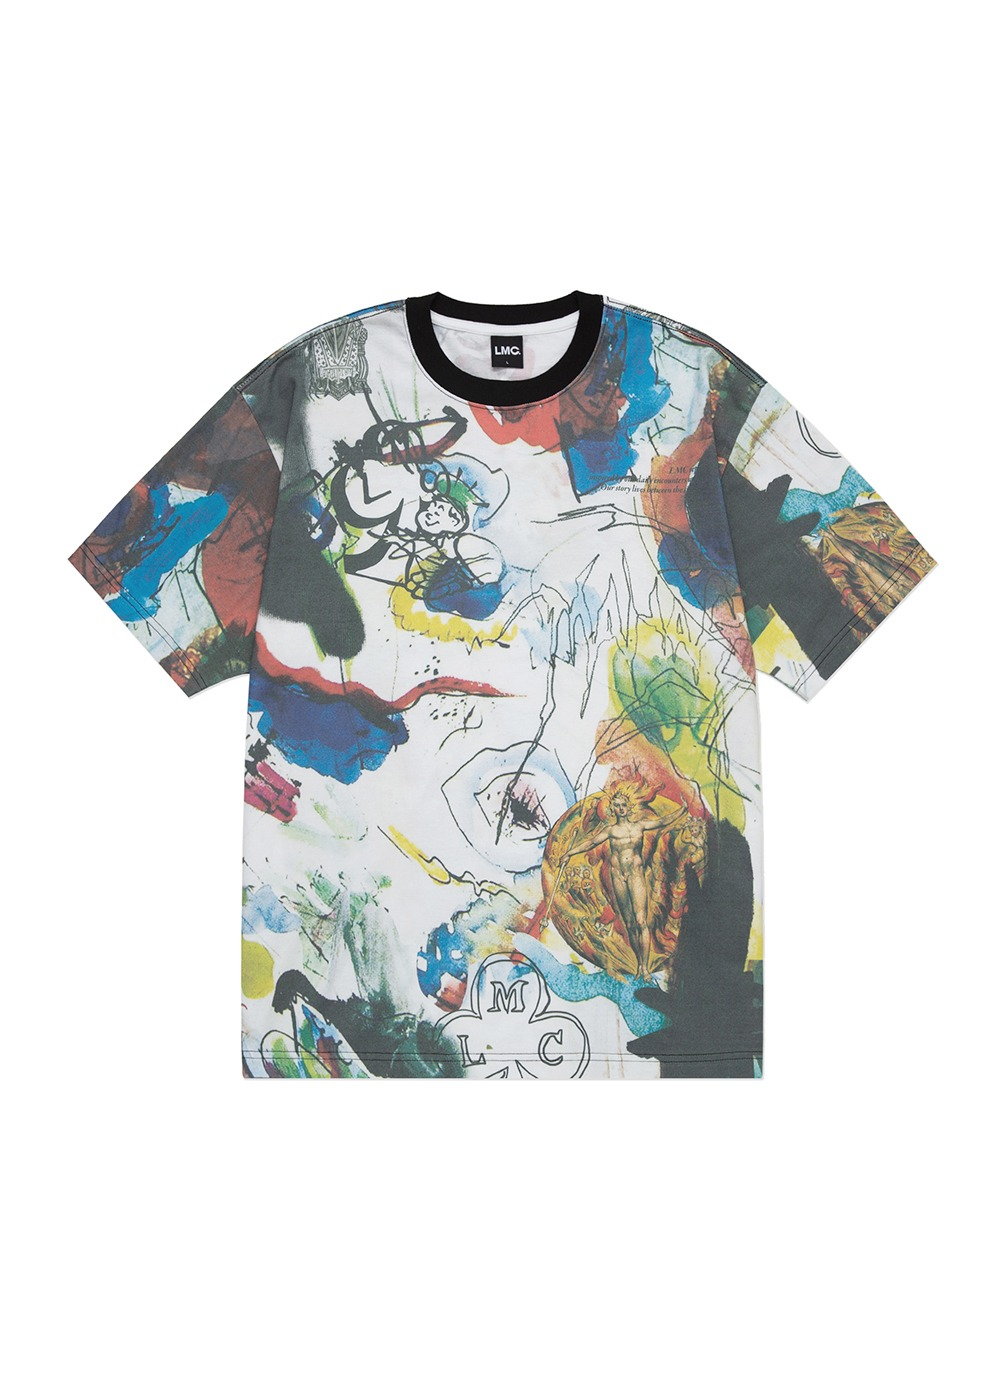 LMC ARTWORKS PAINTING TEE multi